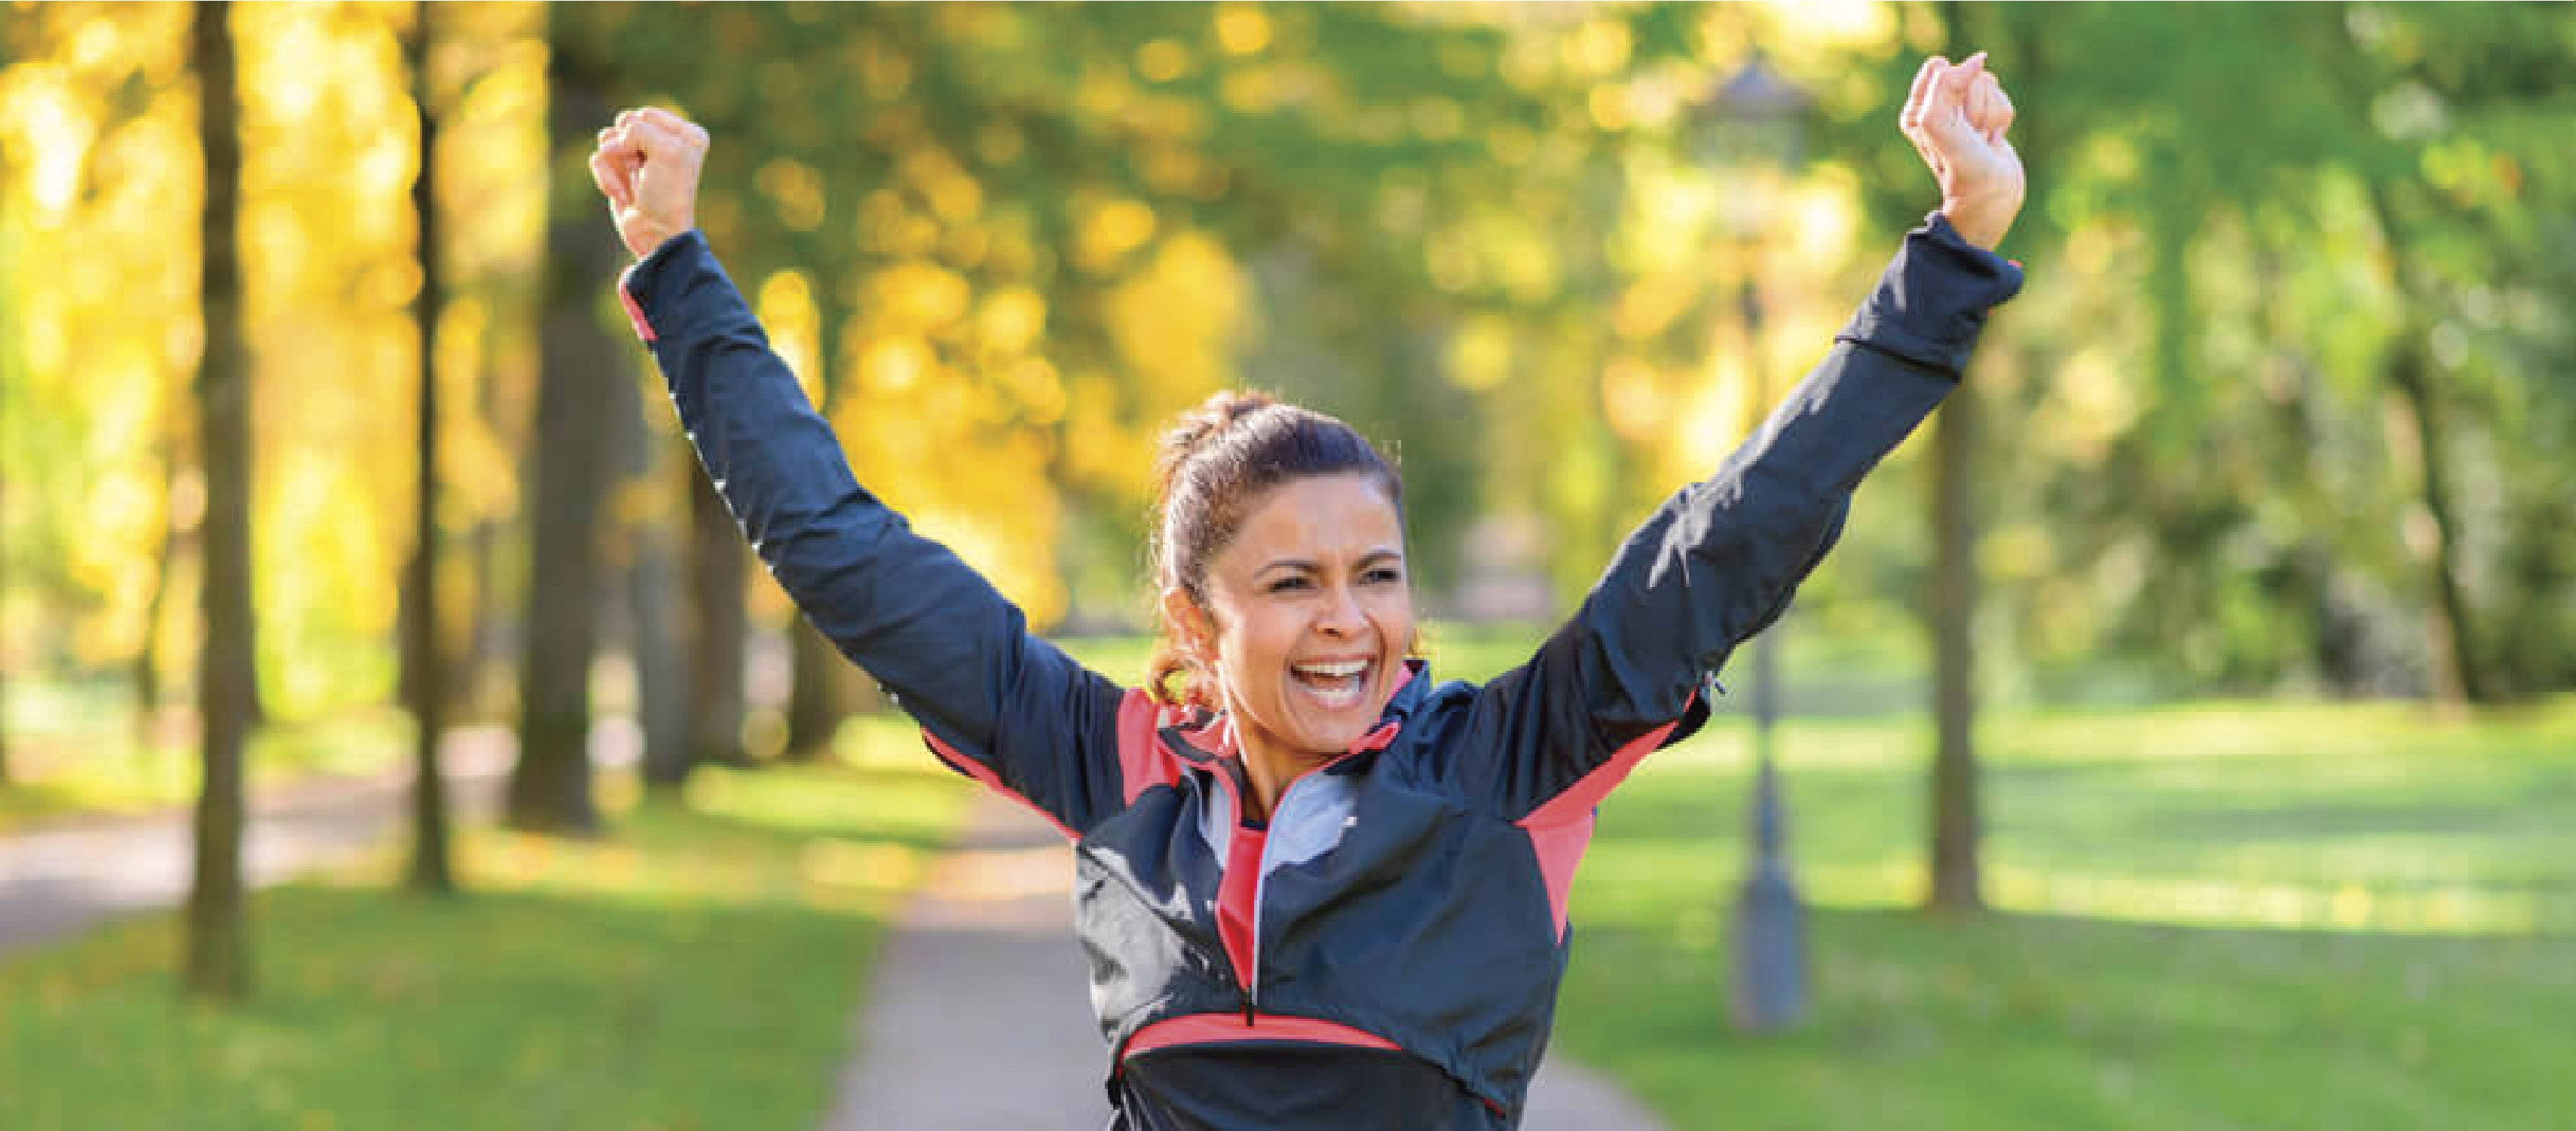 Happy woman doing exercise in the park